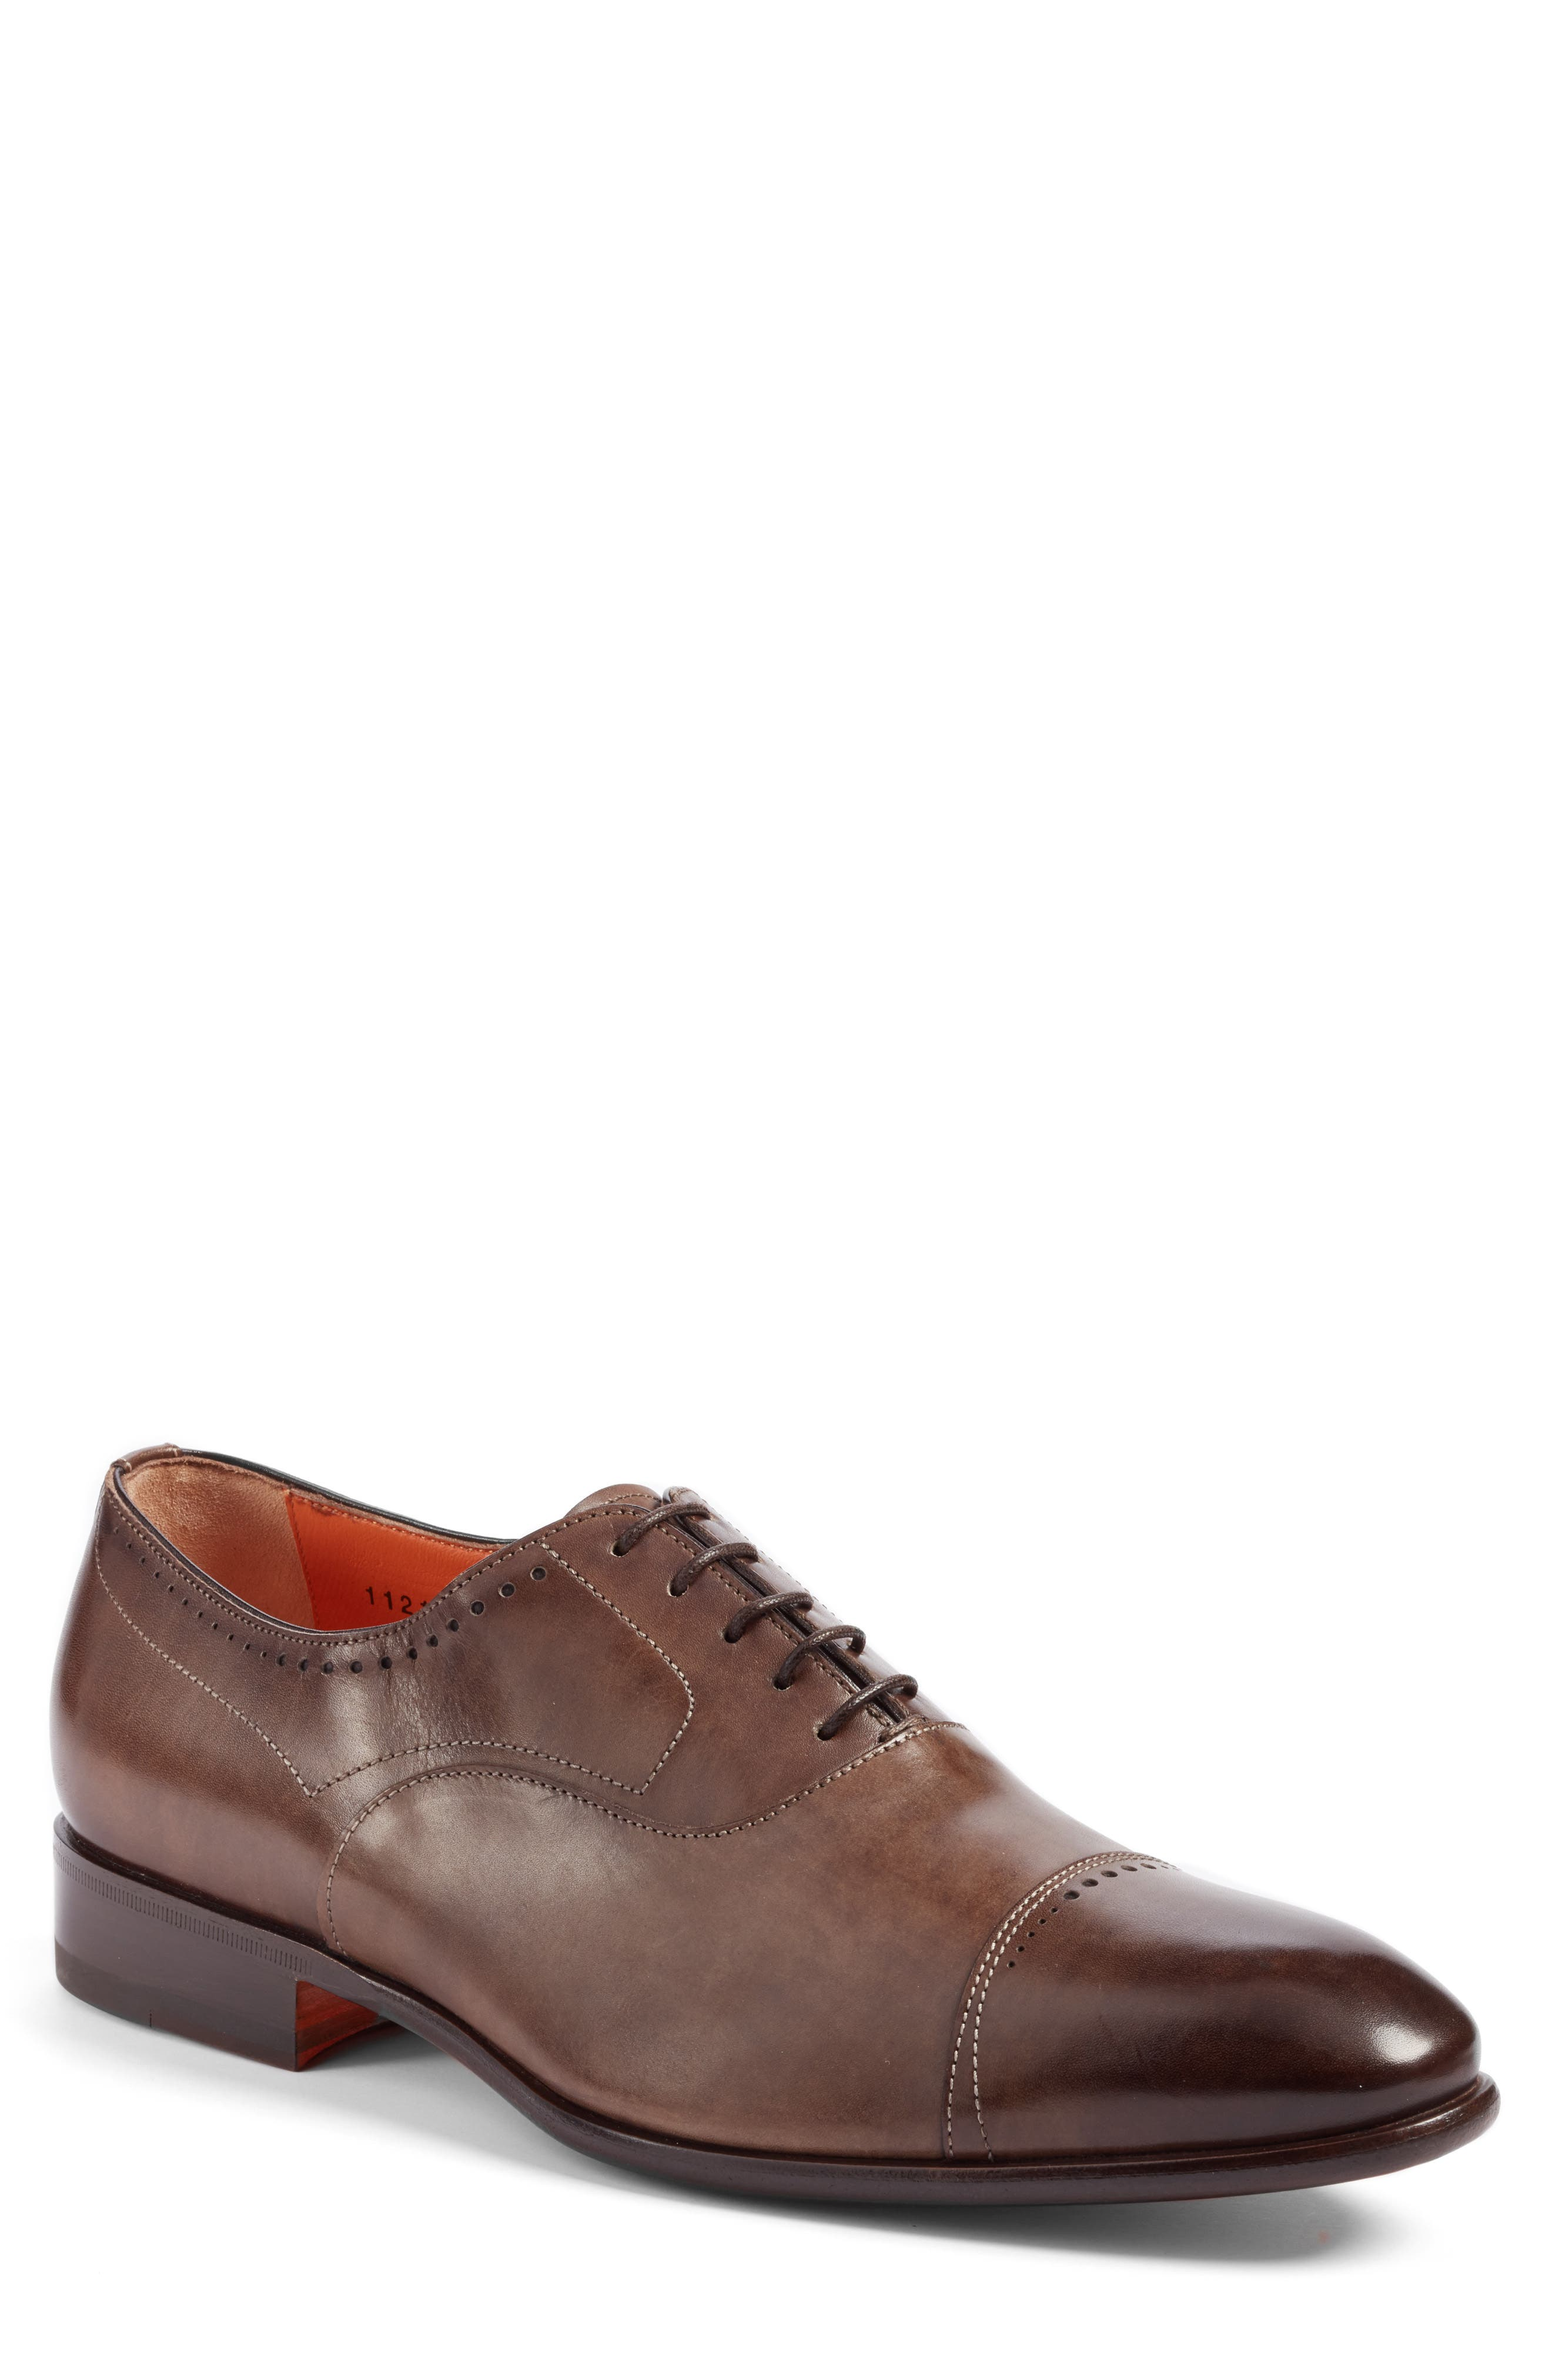 Thurman Cap Toe Oxford,                         Main,                         color, Dark Brown Leather